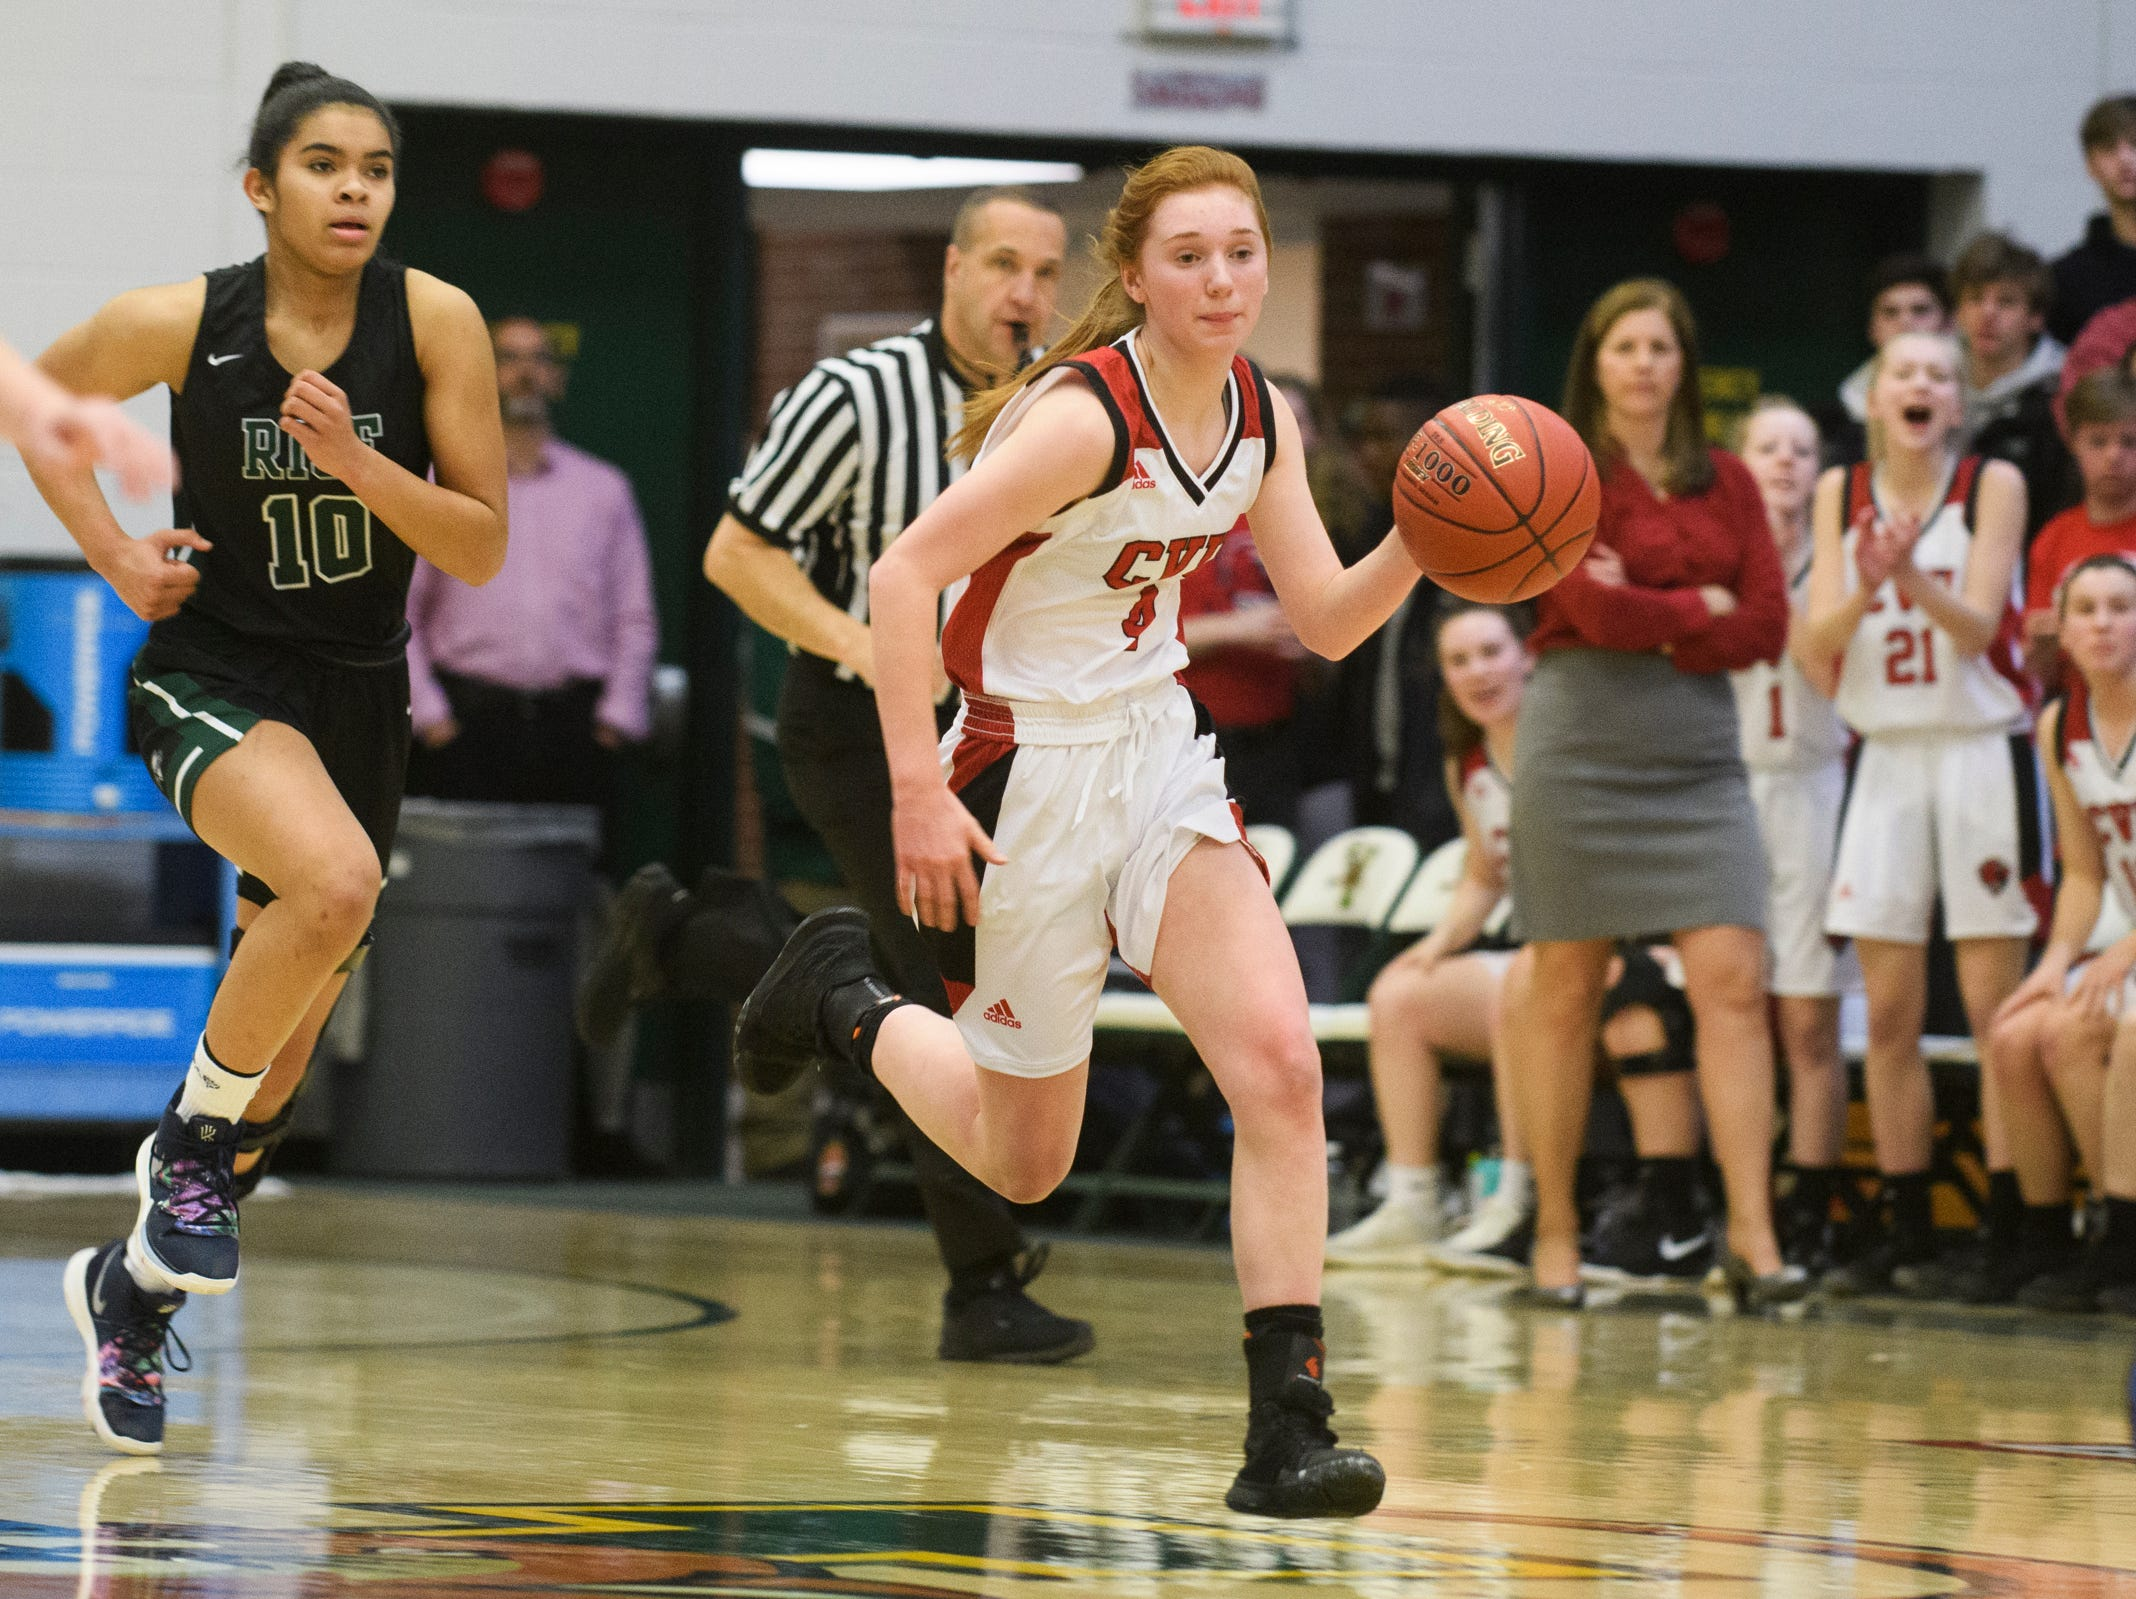 CVU's Catherine Cilwee (4) dribbles the ball down the court during the girls semifinal basketball game between the Rice Green Knights and the Champlain Valley Union Redhawks at Patrick Gym on Wednesday nigh March 6, 2019 in Burlington, Vermont.